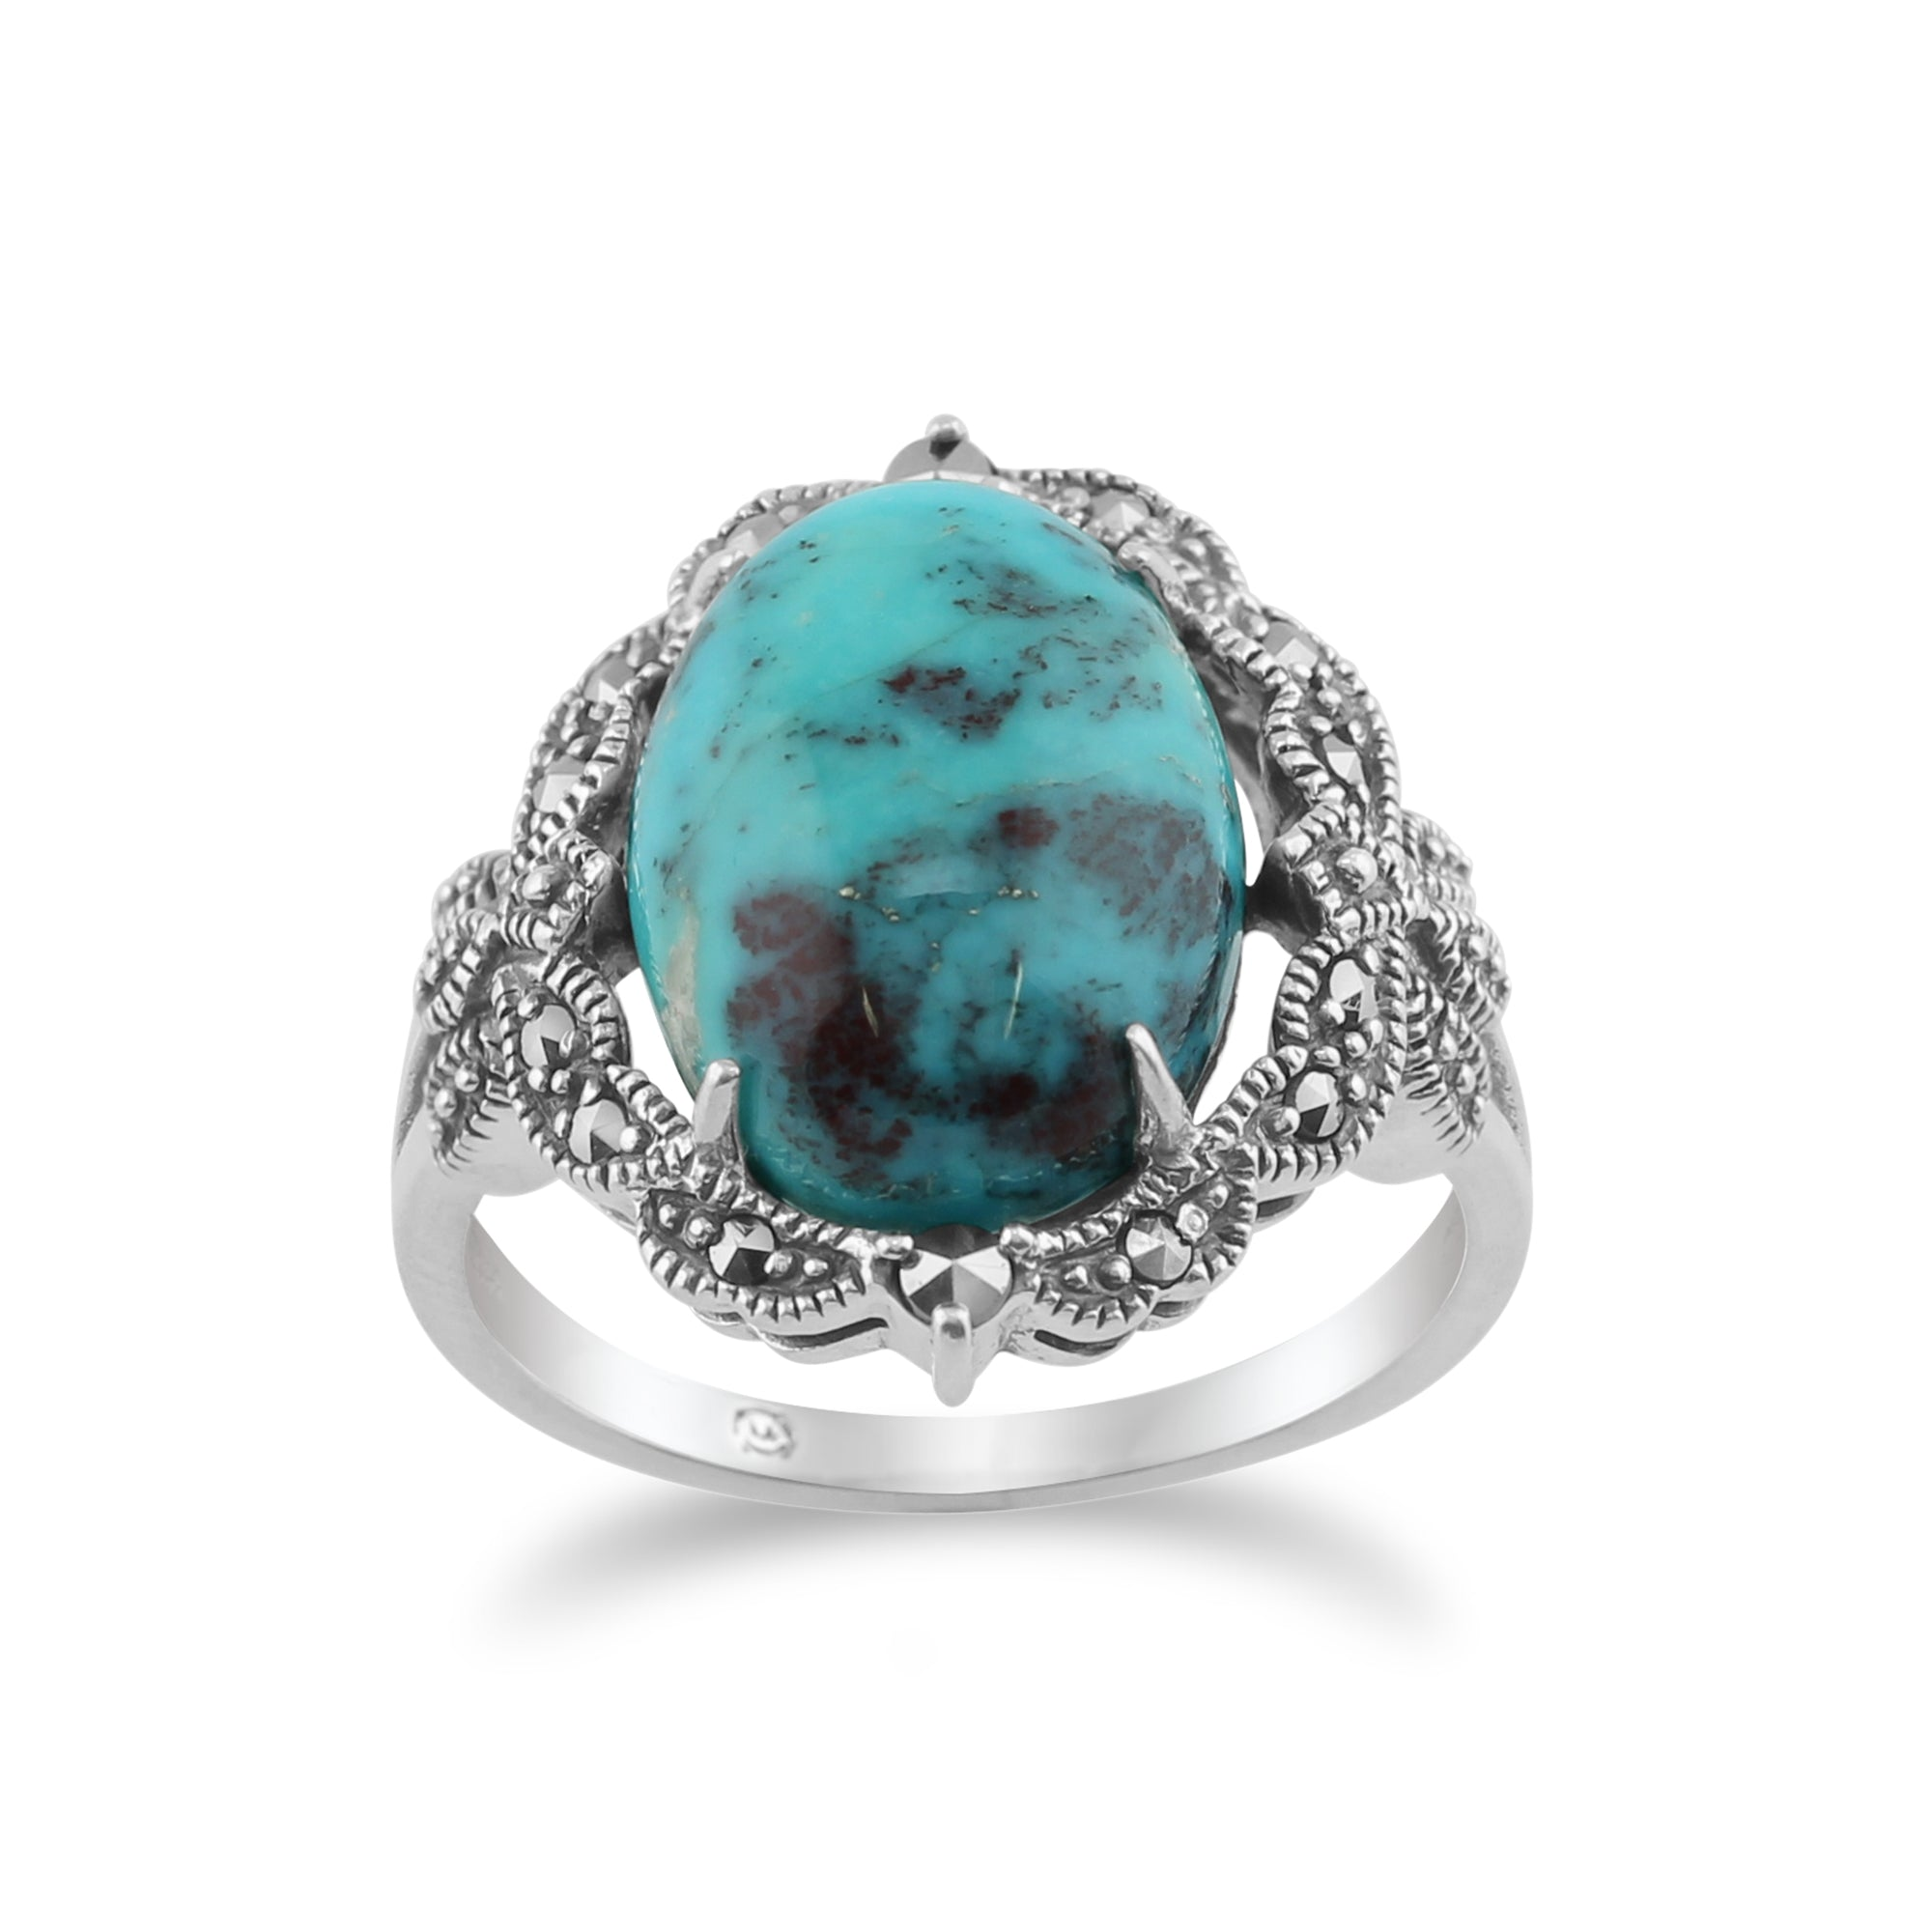 Image of            925 Sterling Silver Art Nouveau Turquoise & Marcasite Statement Ring